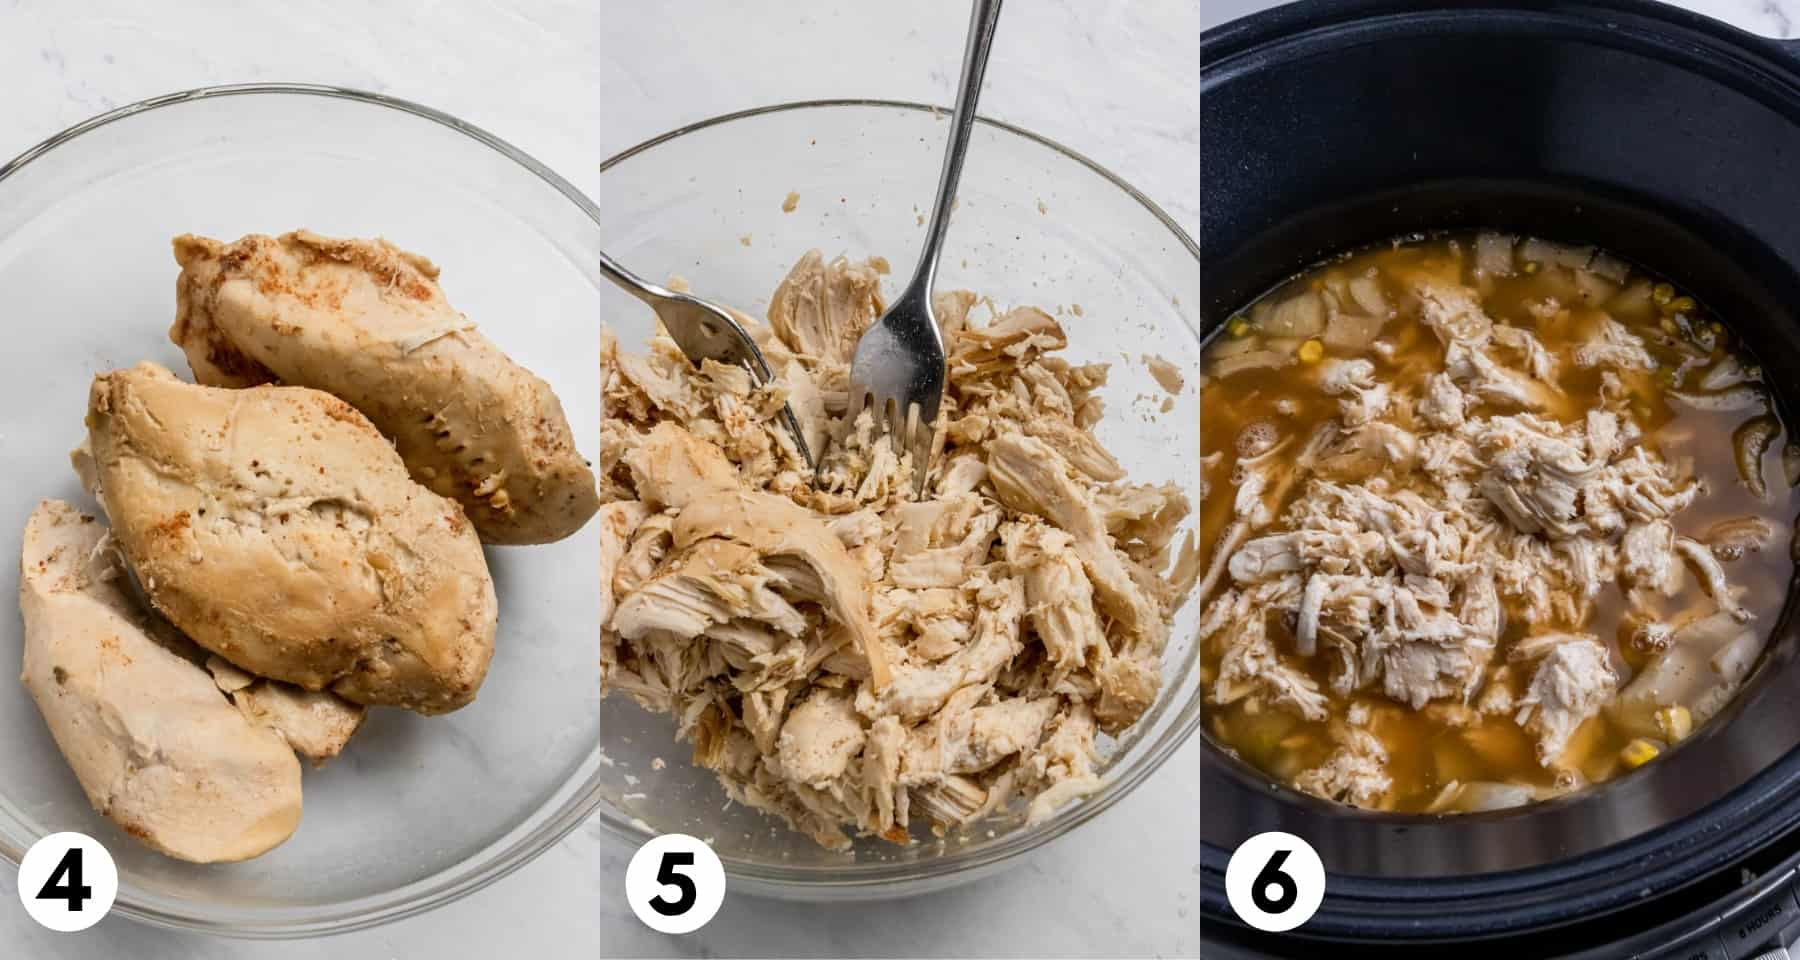 Chicken in bowl shredded and then added to crock pot.